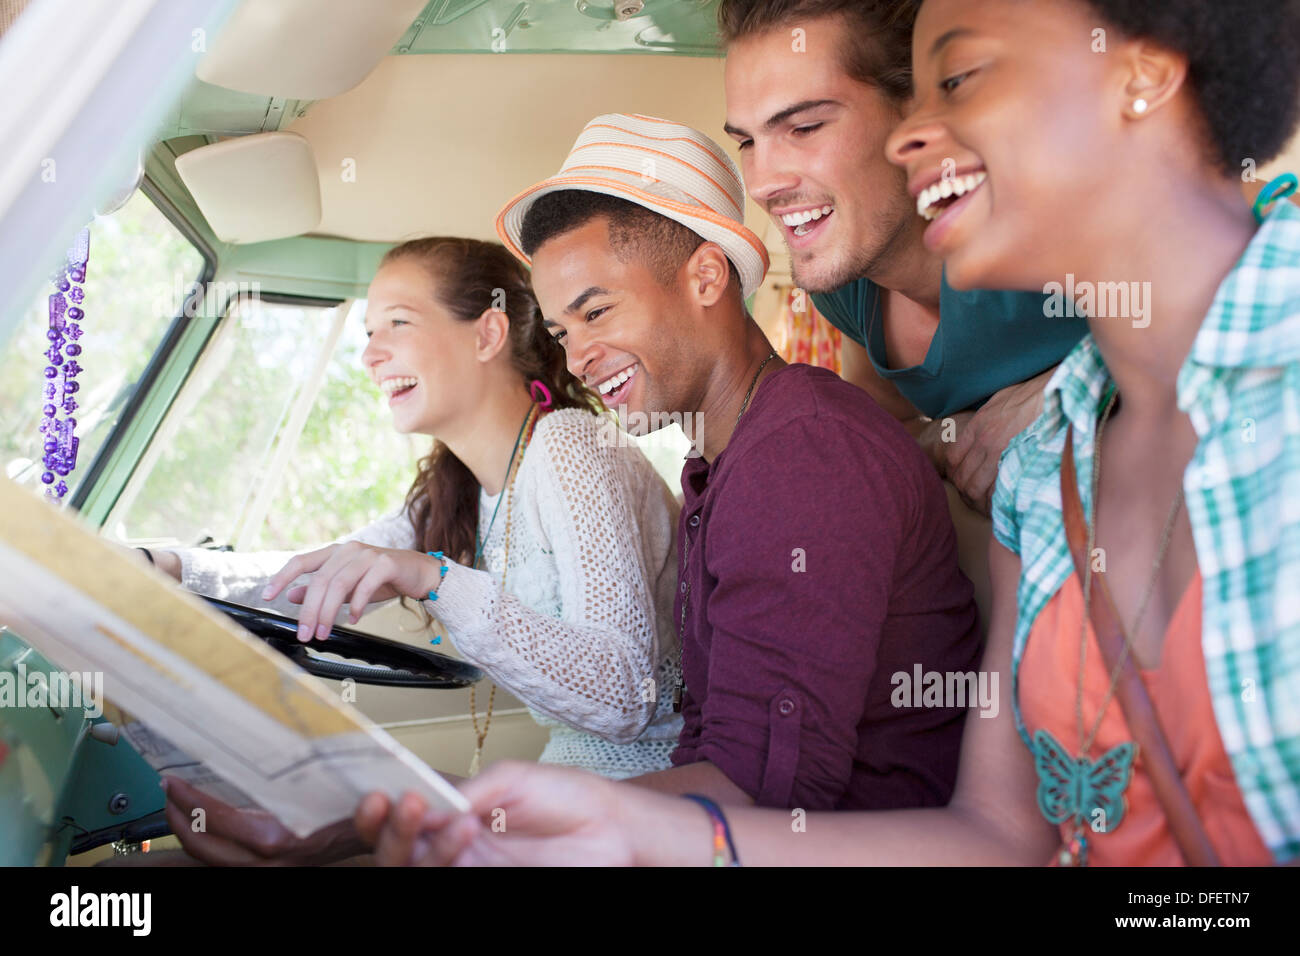 Smiling friends in van - Stock Image